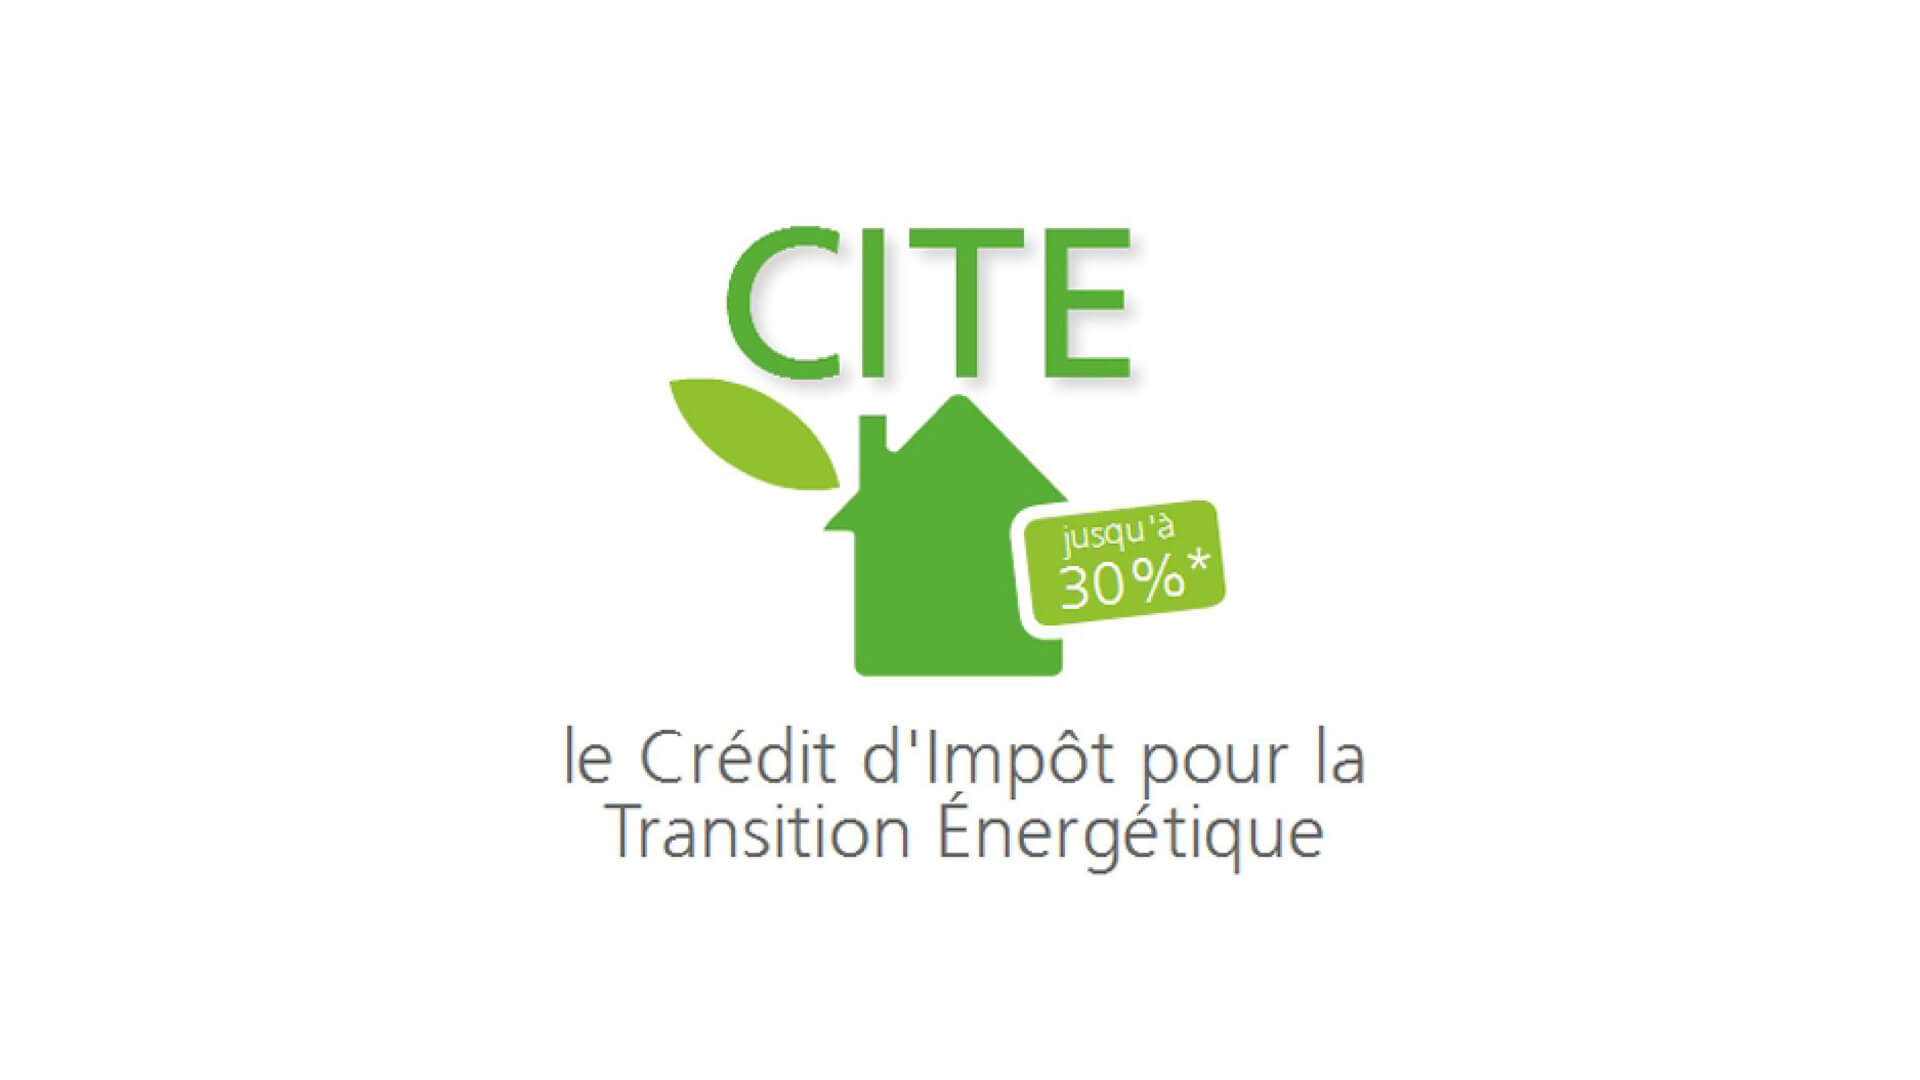 Les Proprietaires Beneficient Du Credit D Impot Pour La Transition